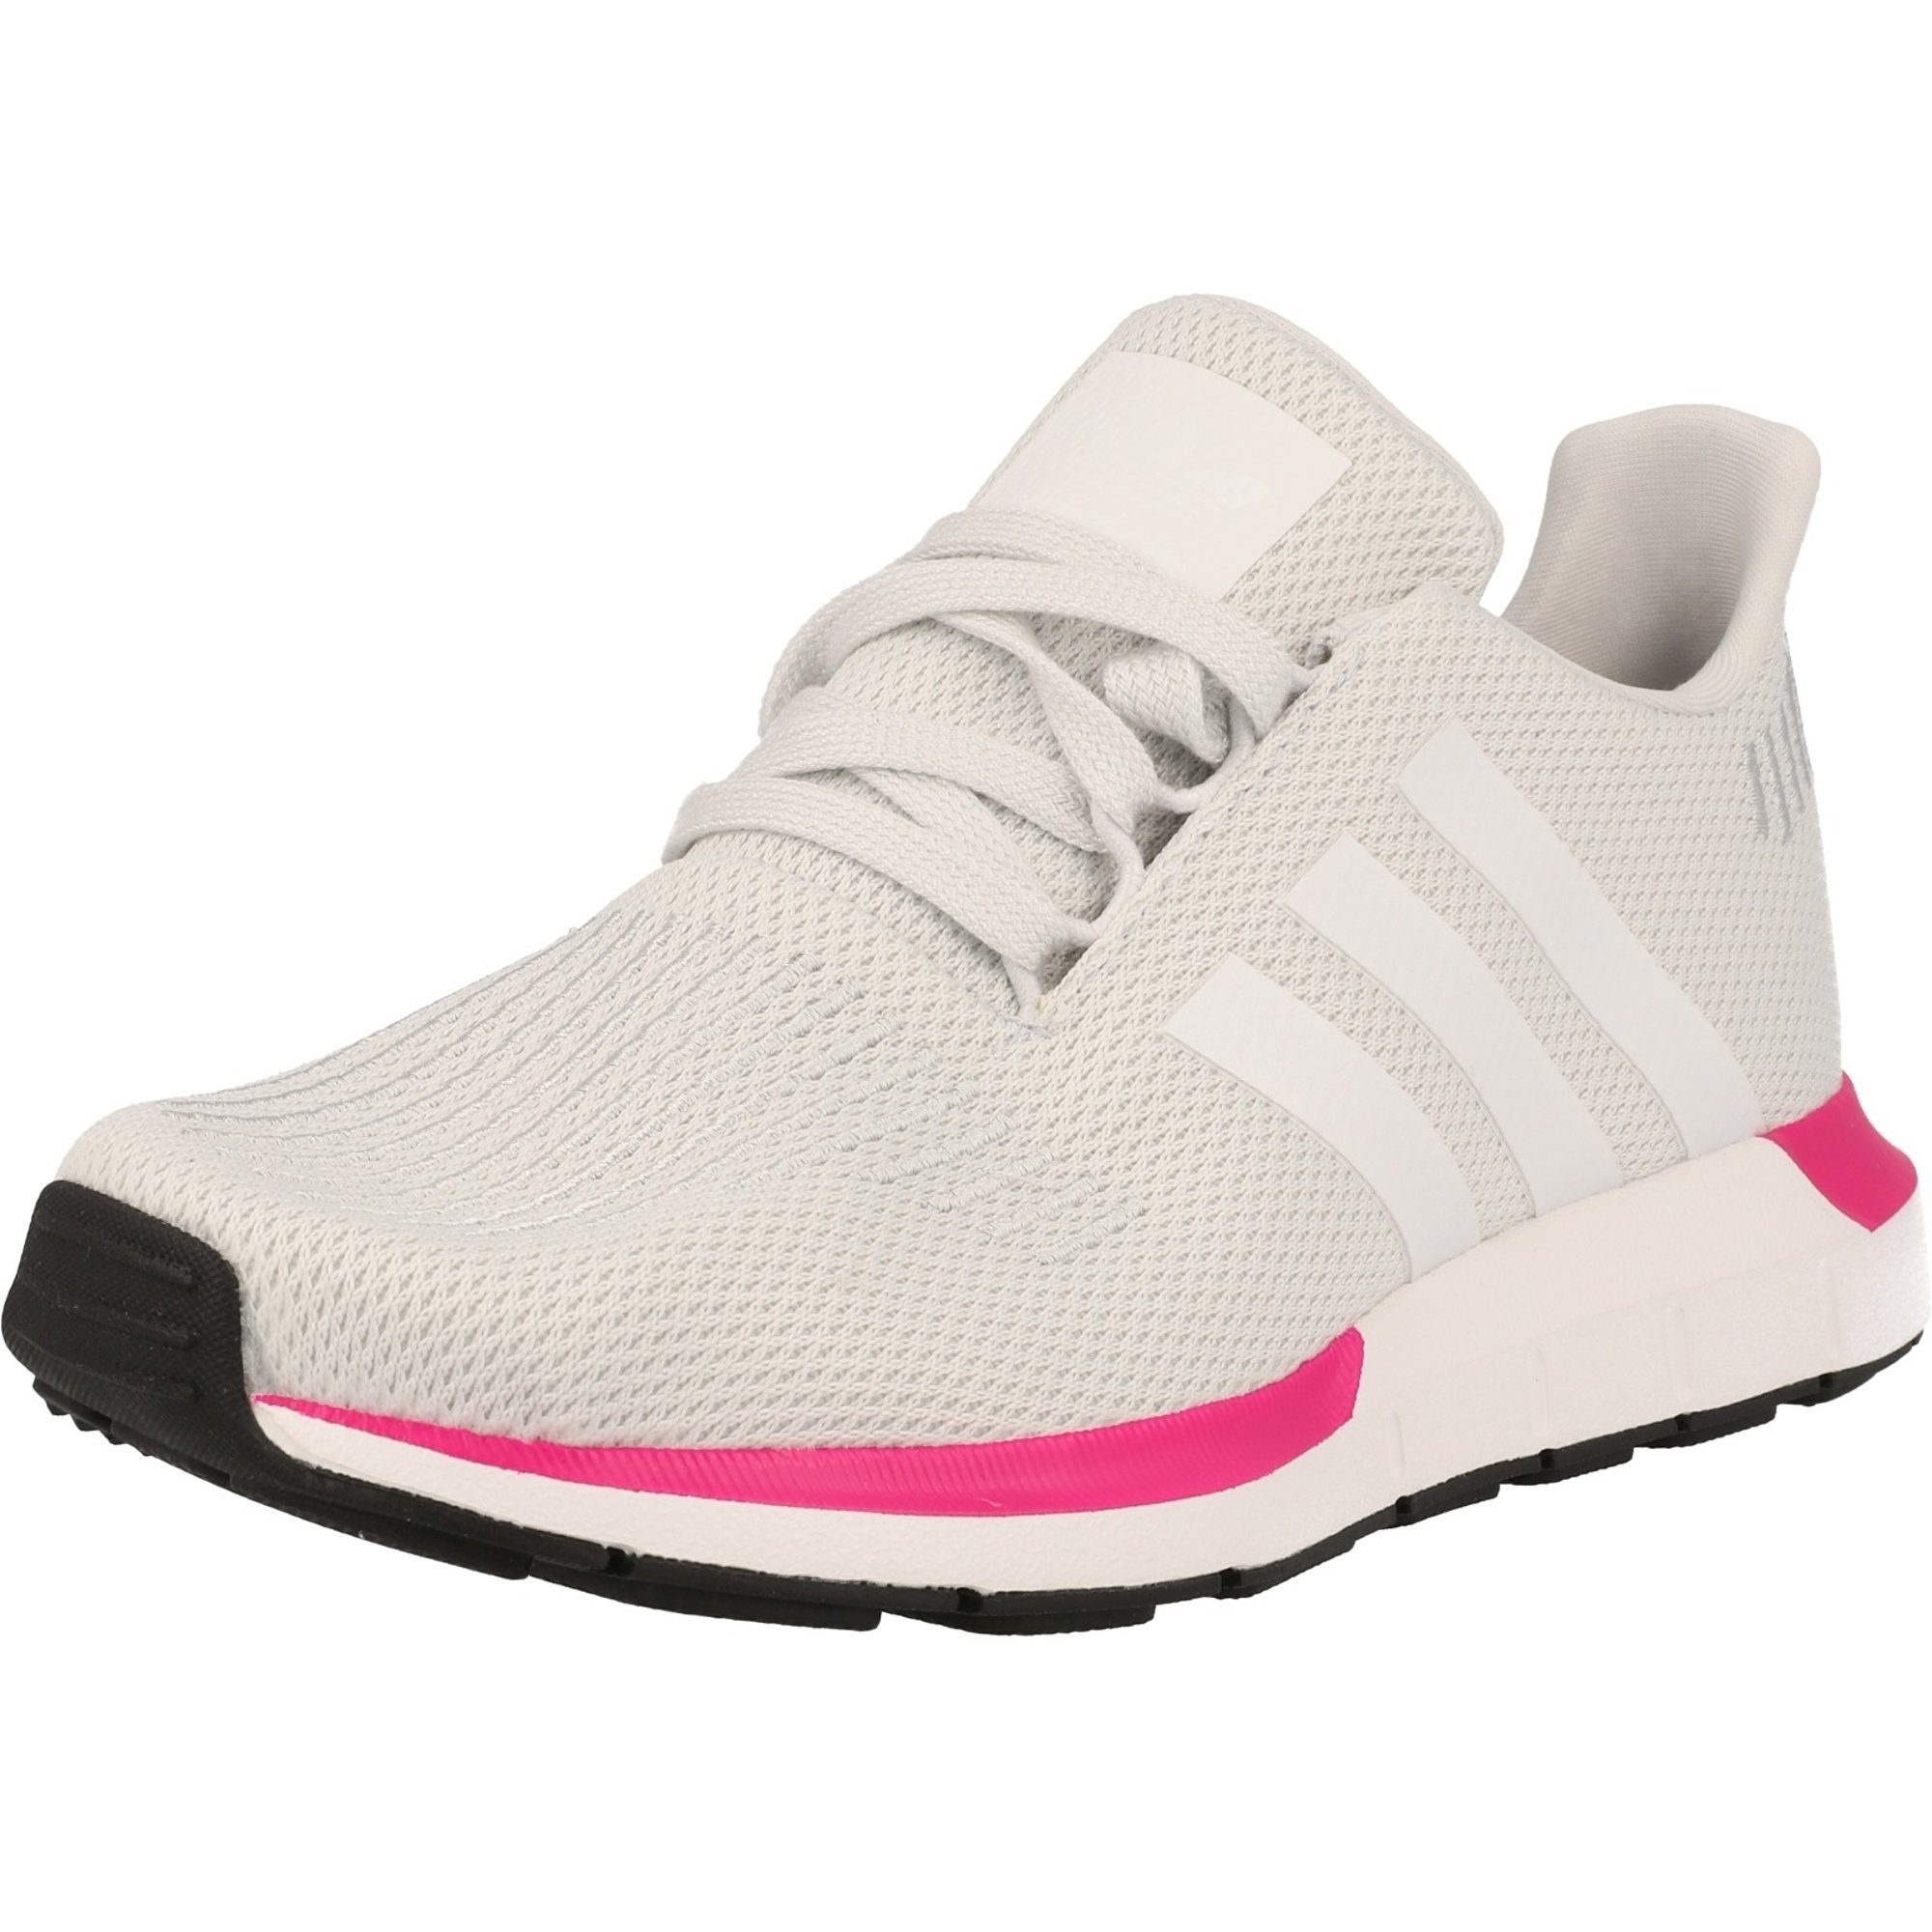 Surichinmoi doble Química  adidas Originals Swift Run J Crystal White Textile - Trainers Shoes -  Awesome Shoes